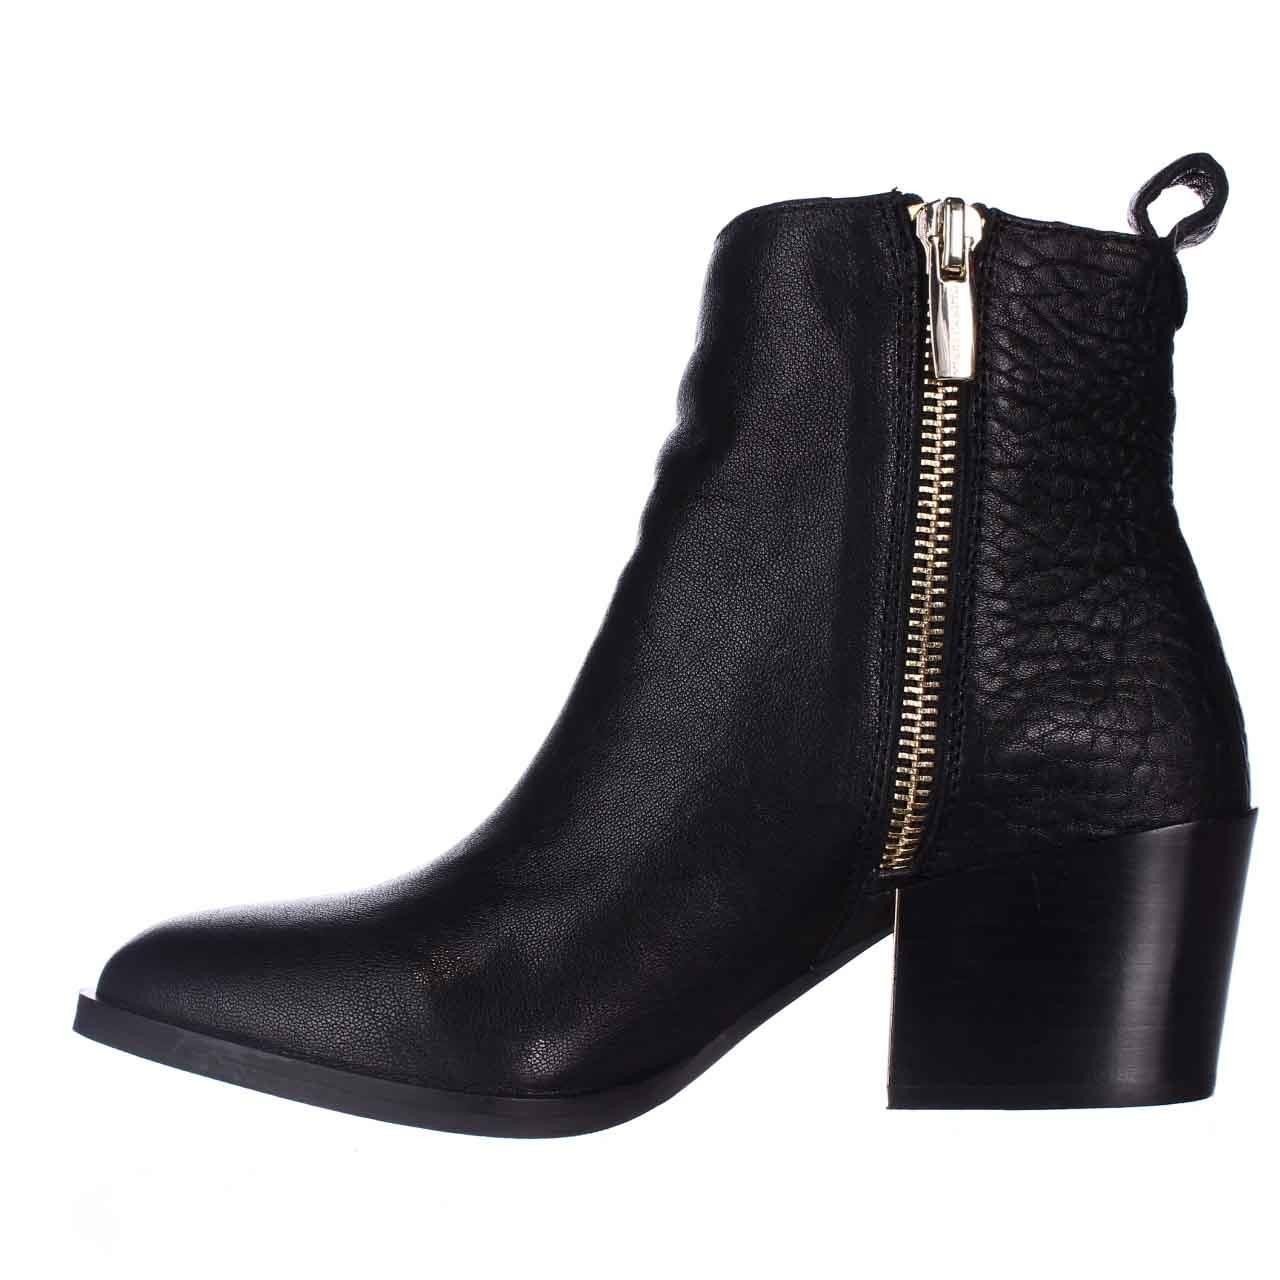 vince camuto imala low heel ankle boots in black lyst